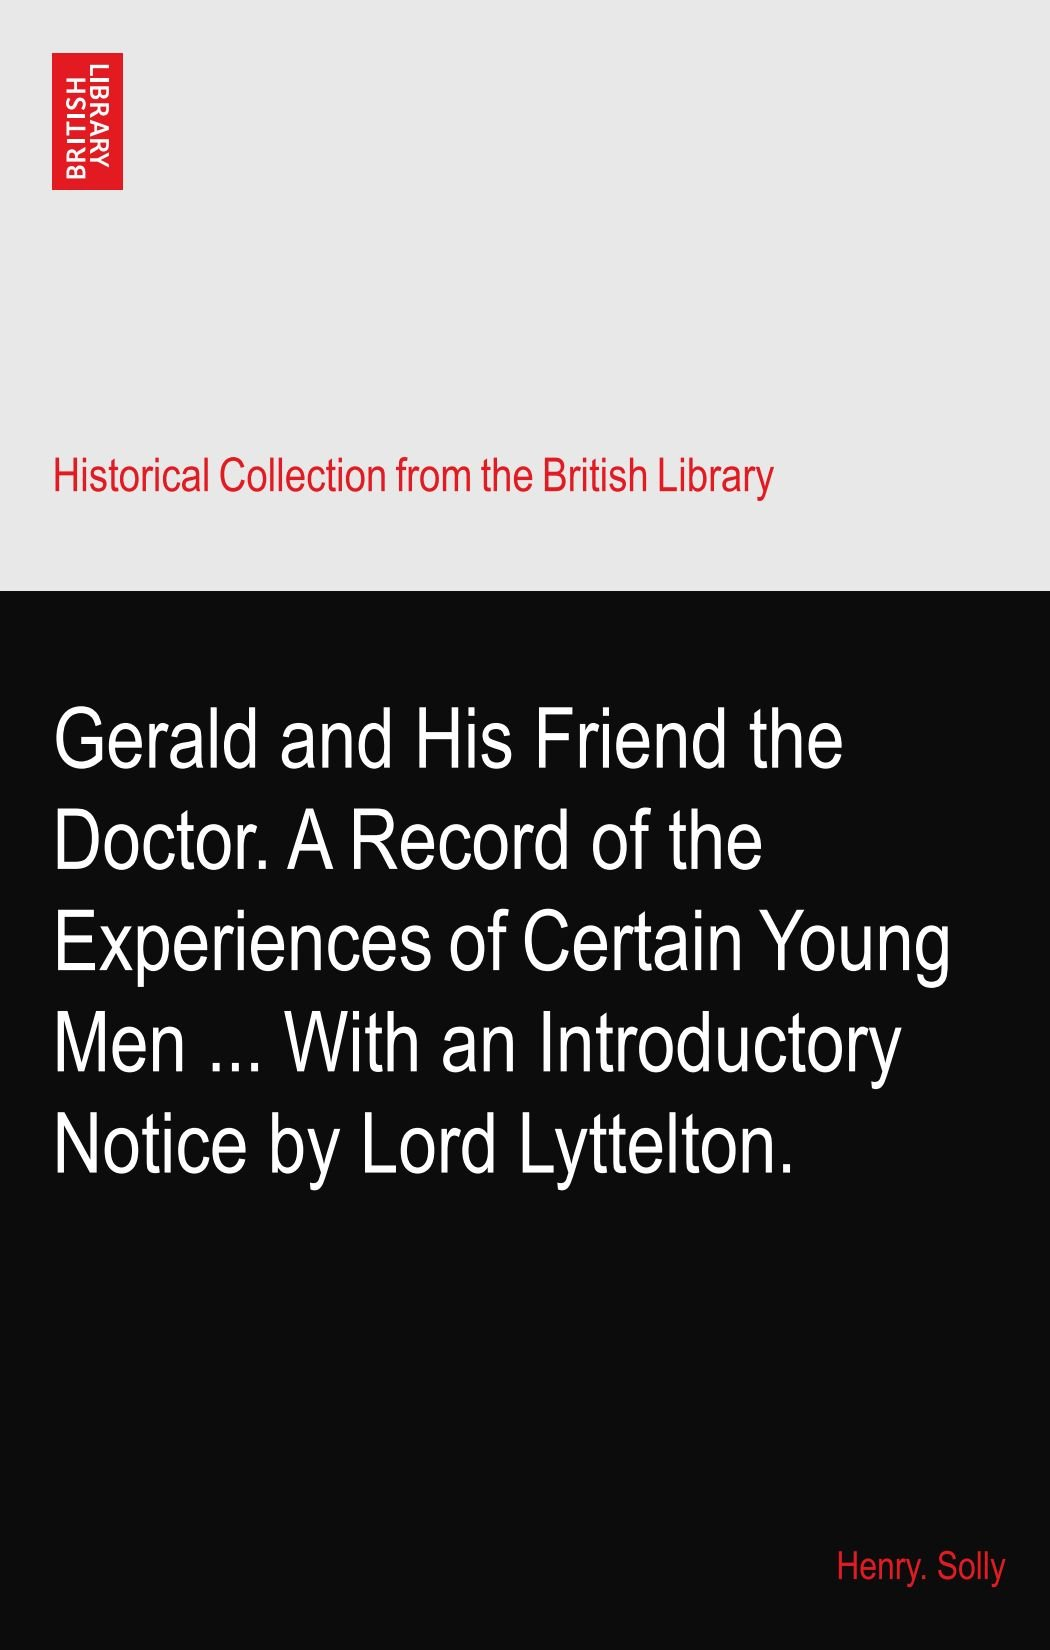 Gerald and His Friend the Doctor. A Record of the Experiences of Certain Young Men ... With an Introductory Notice by Lord Lyttelton. pdf epub